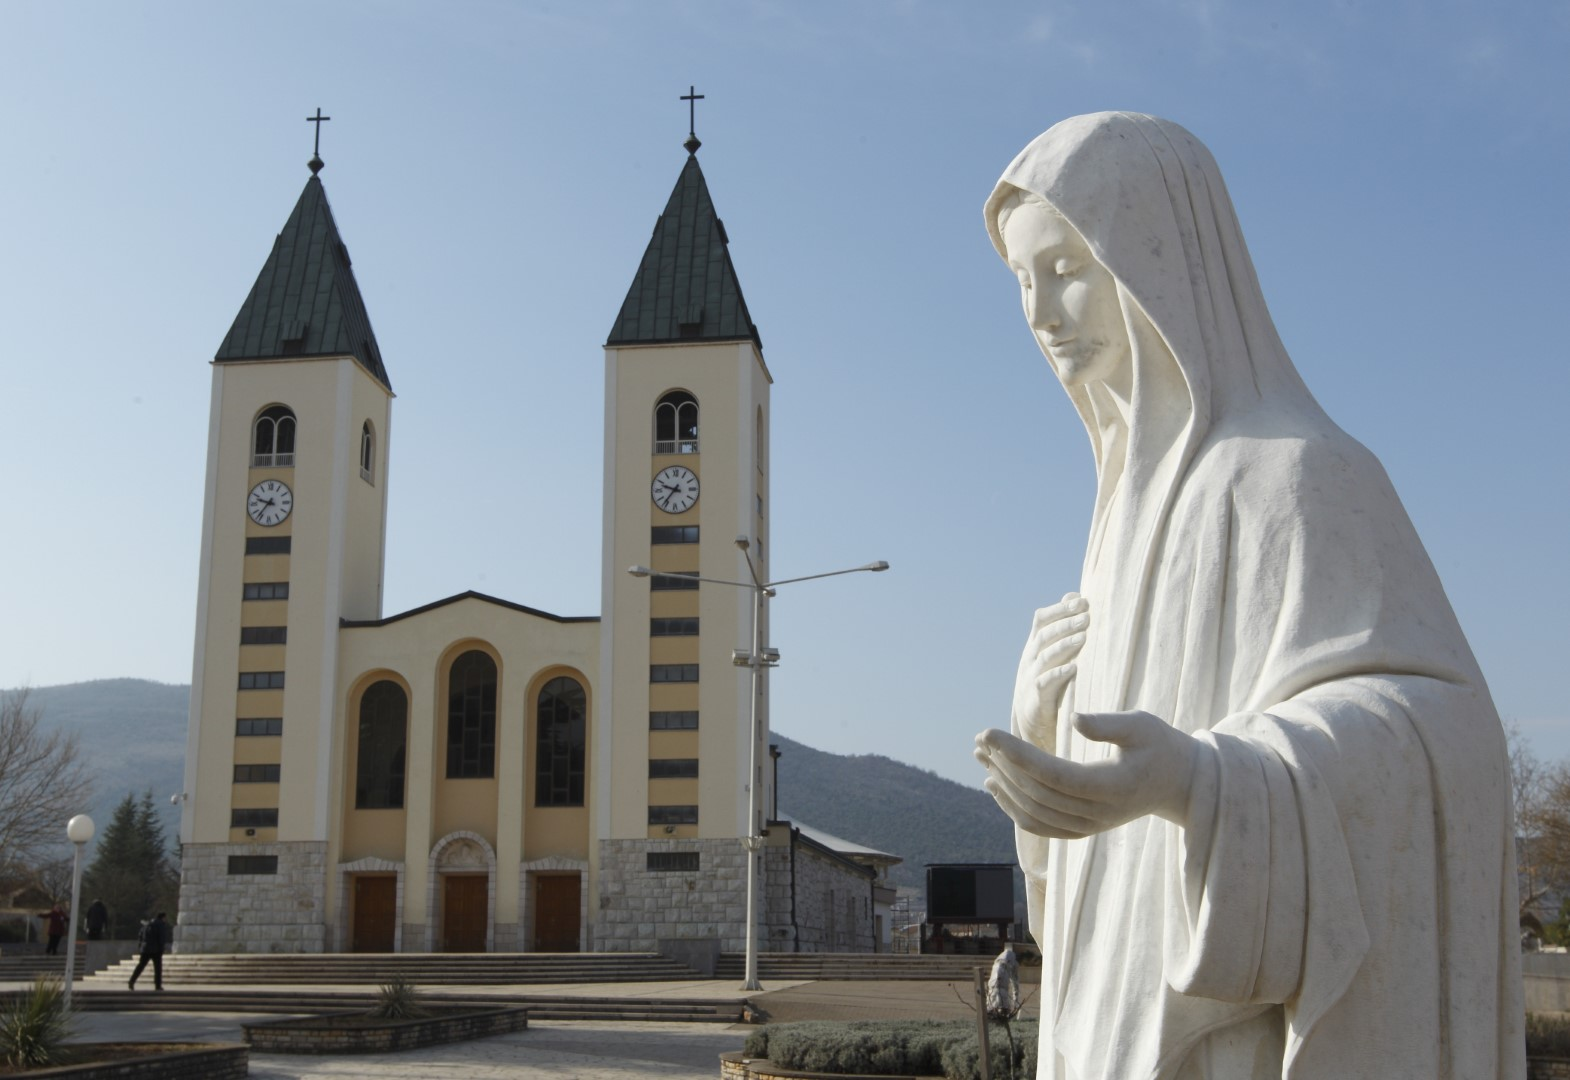 Vatican investigator: 'All indications' Medjugorje could be approved this year